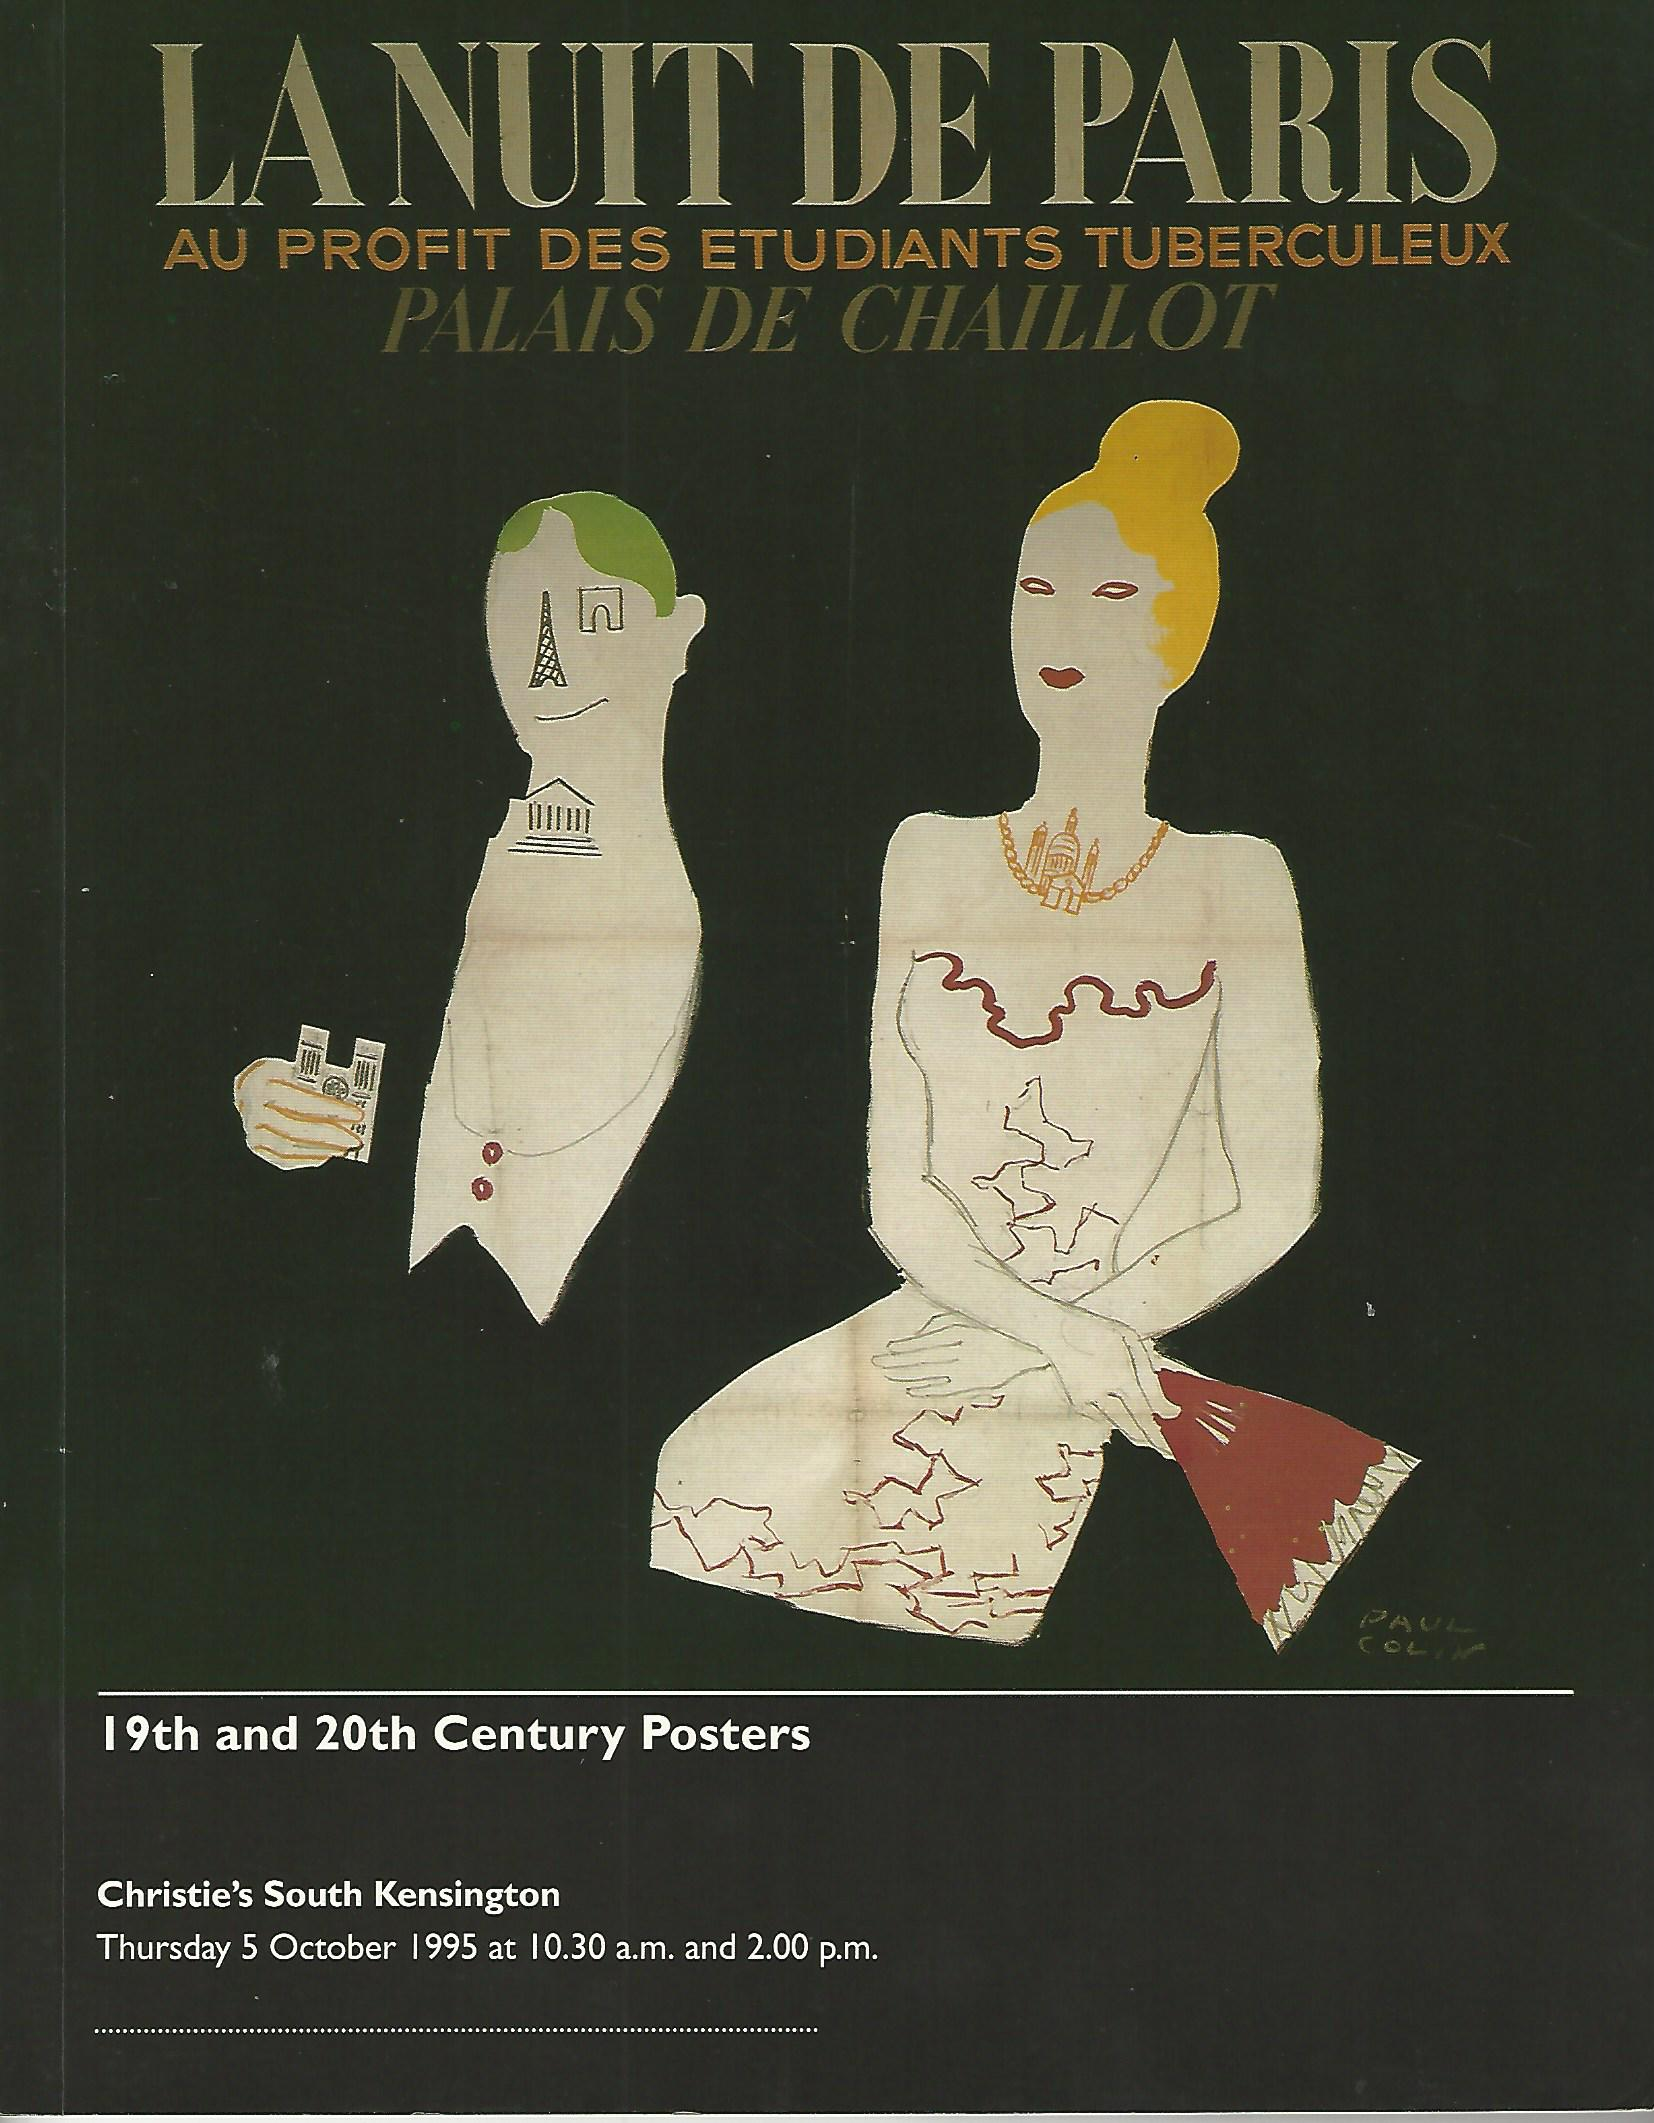 Image for Christie's South Kensington La Nuit de Paris 19th and 20th Century Posters, Thursday 5 October 1995.